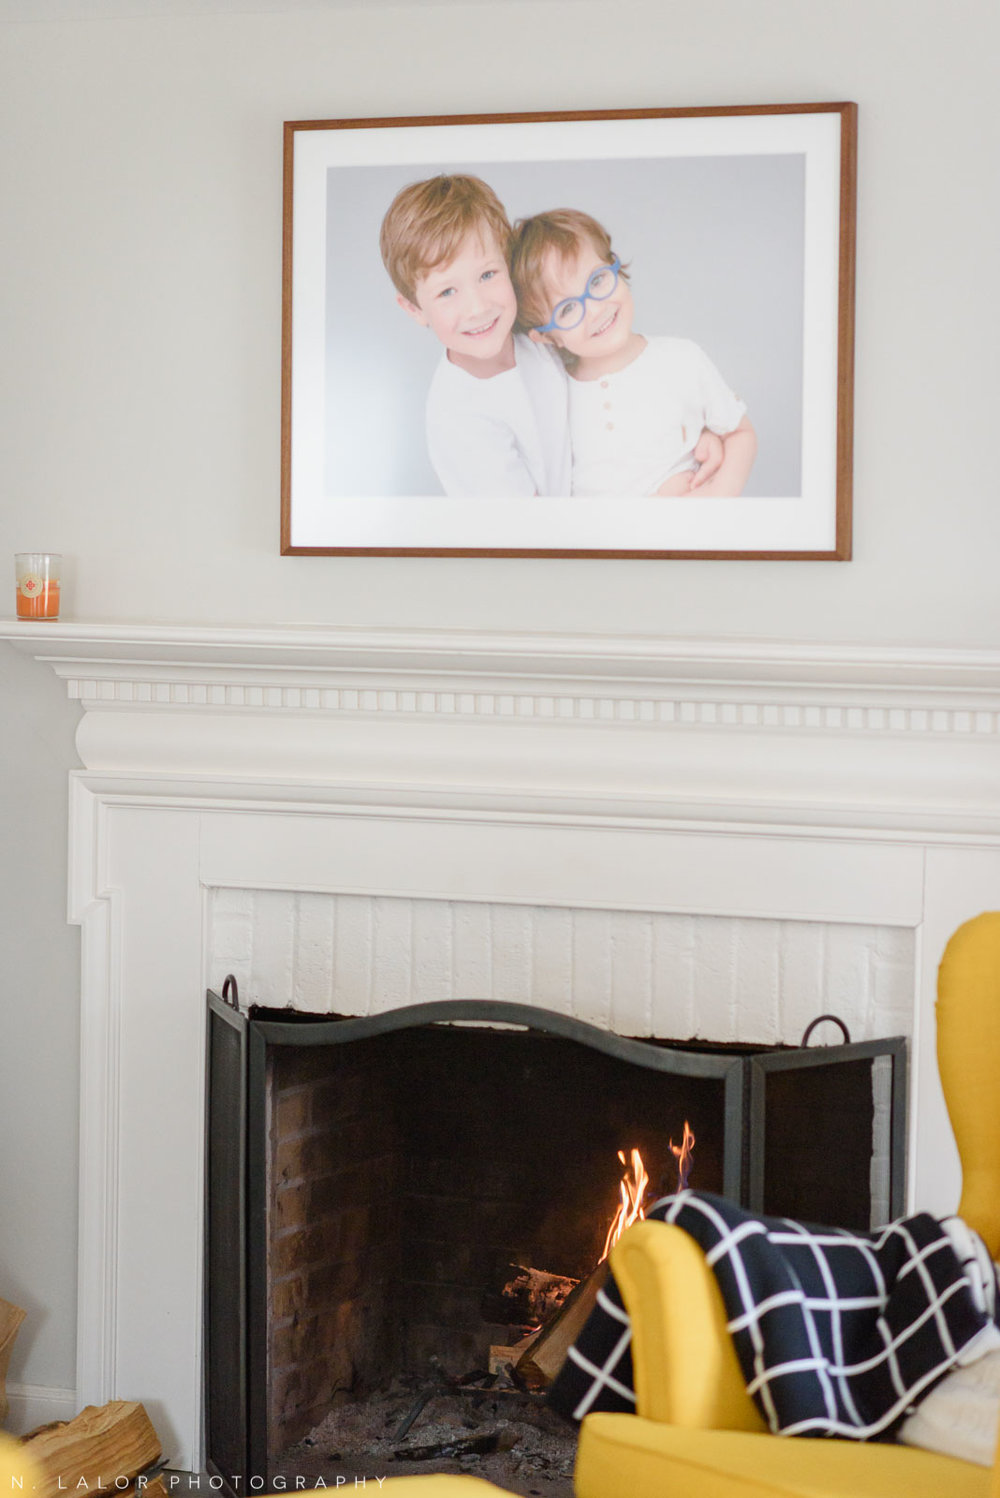 """Image of a large 30x20"""" framed photograph of two brothers. Photograph by N. Lalor Photography."""